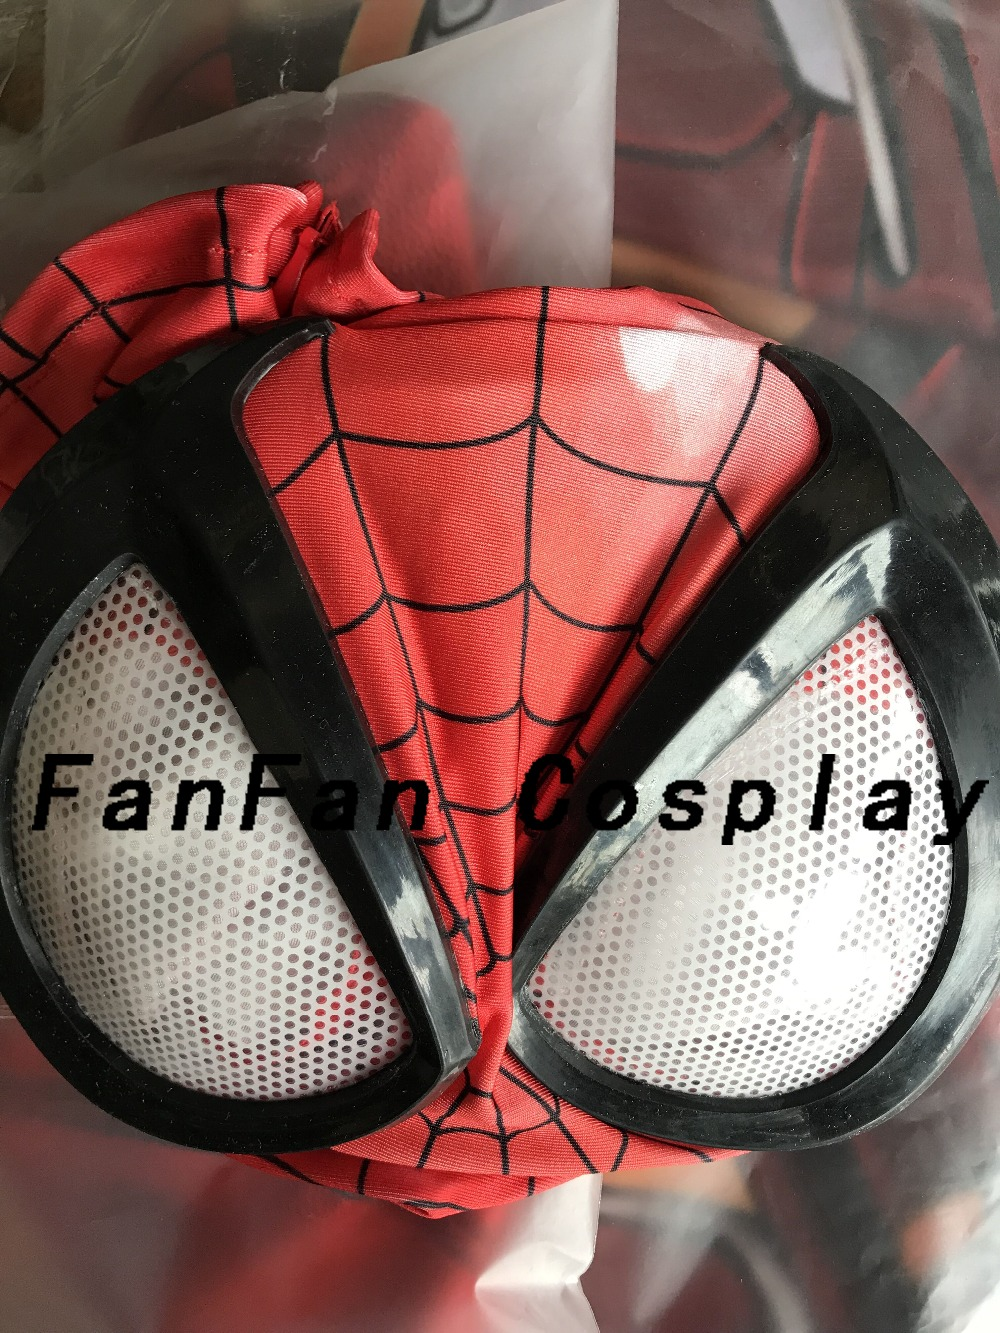 Image 4 - 3D Spiderman Masks Big Spiderman Lenses Spiderman Mask for Halloween Party Costume Props Adult Hot Sale-in Boys Costume Accessories from Novelty & Special Use